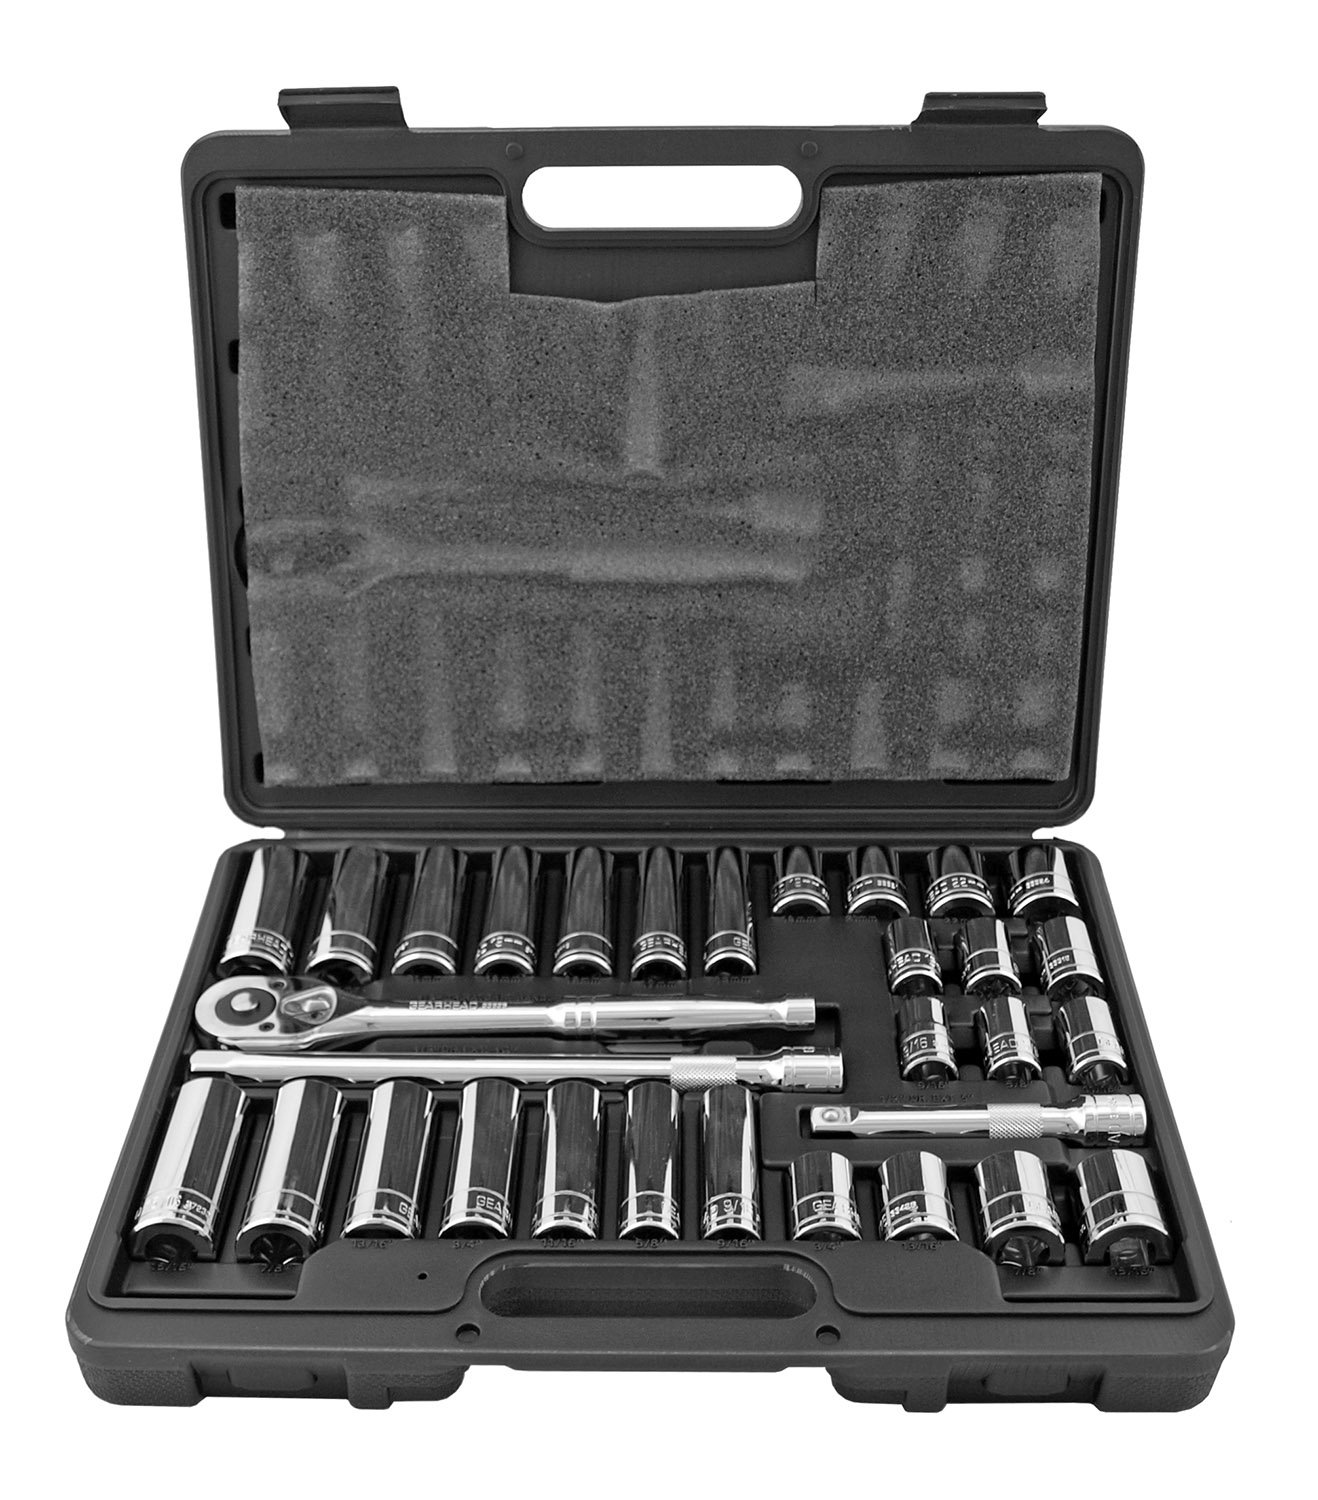 31 pc. SAE and Metric 1/2 in Dr. Socket and Breaker Bar Set - Gearhead